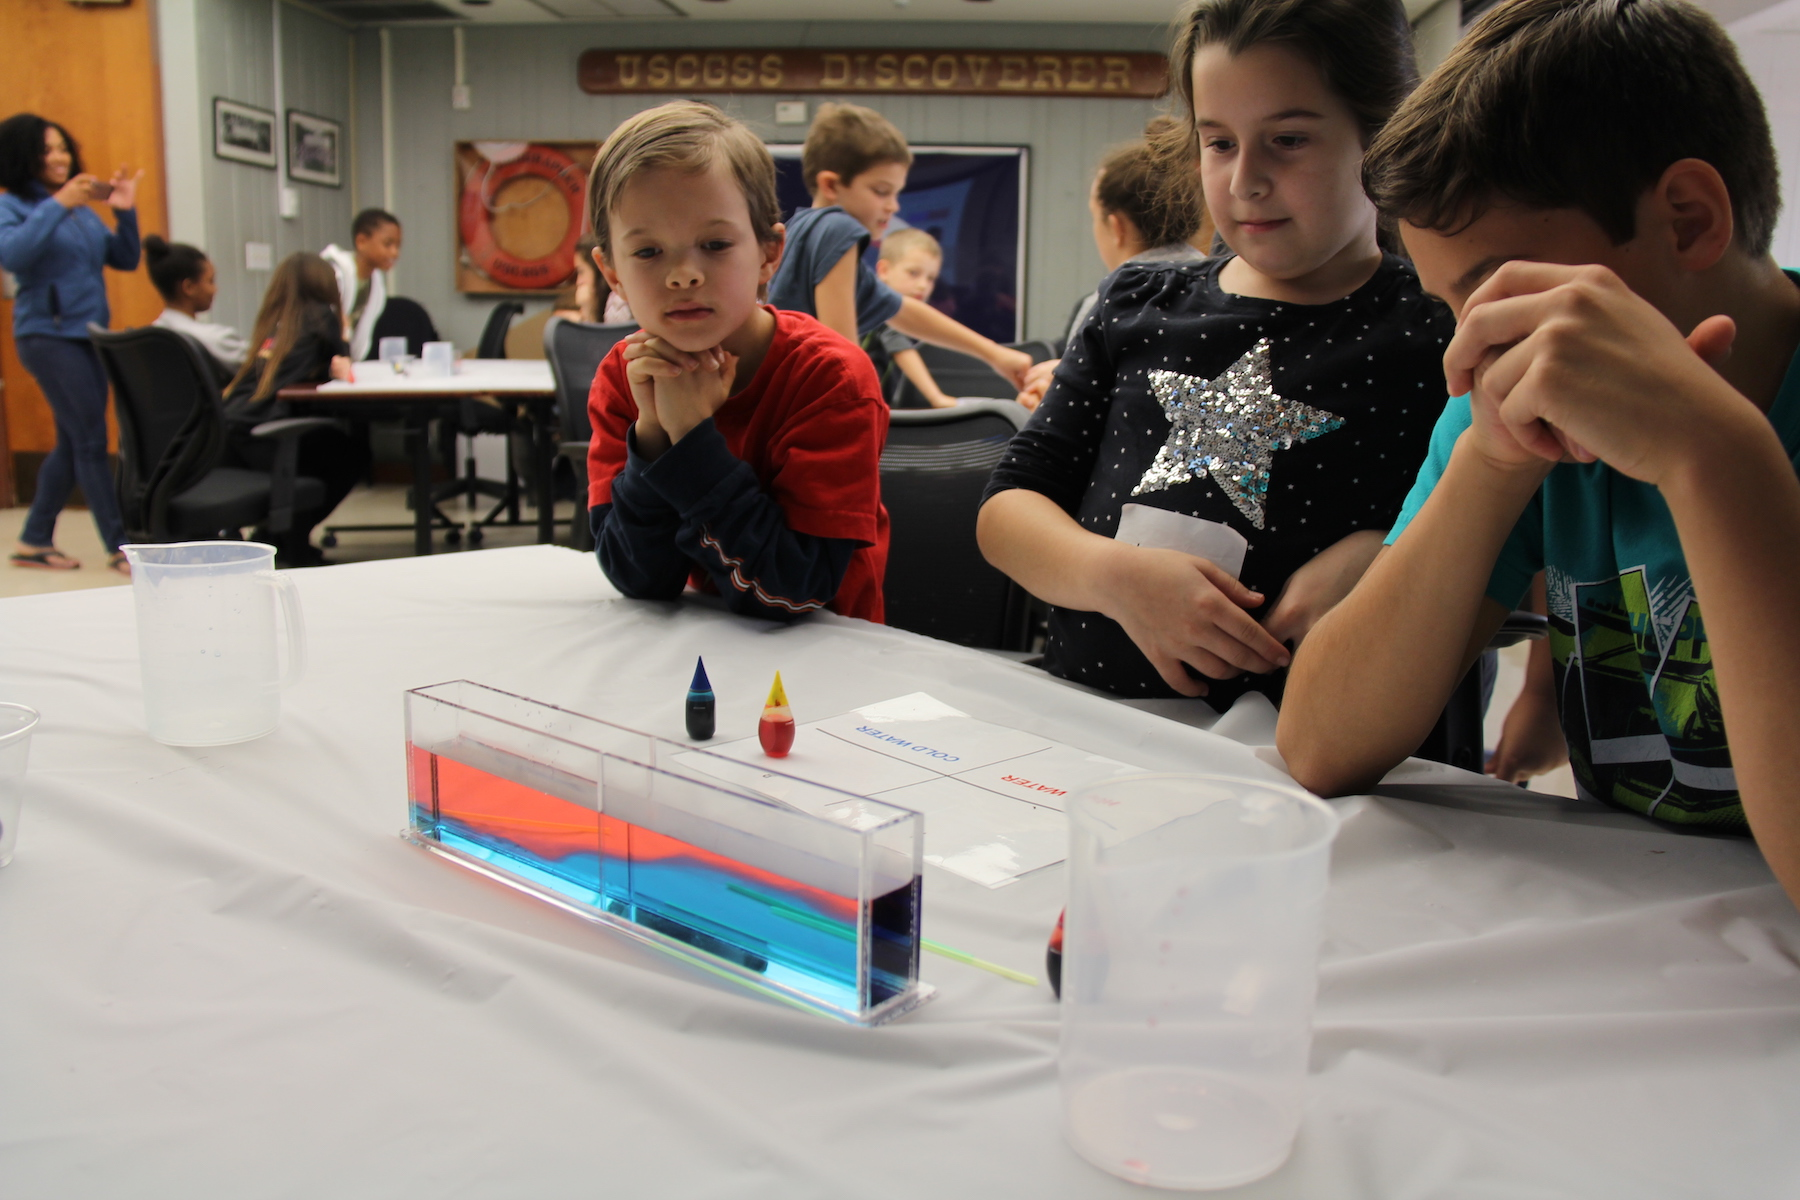 Students participate in a water density demonstration. Image credit: NOAA